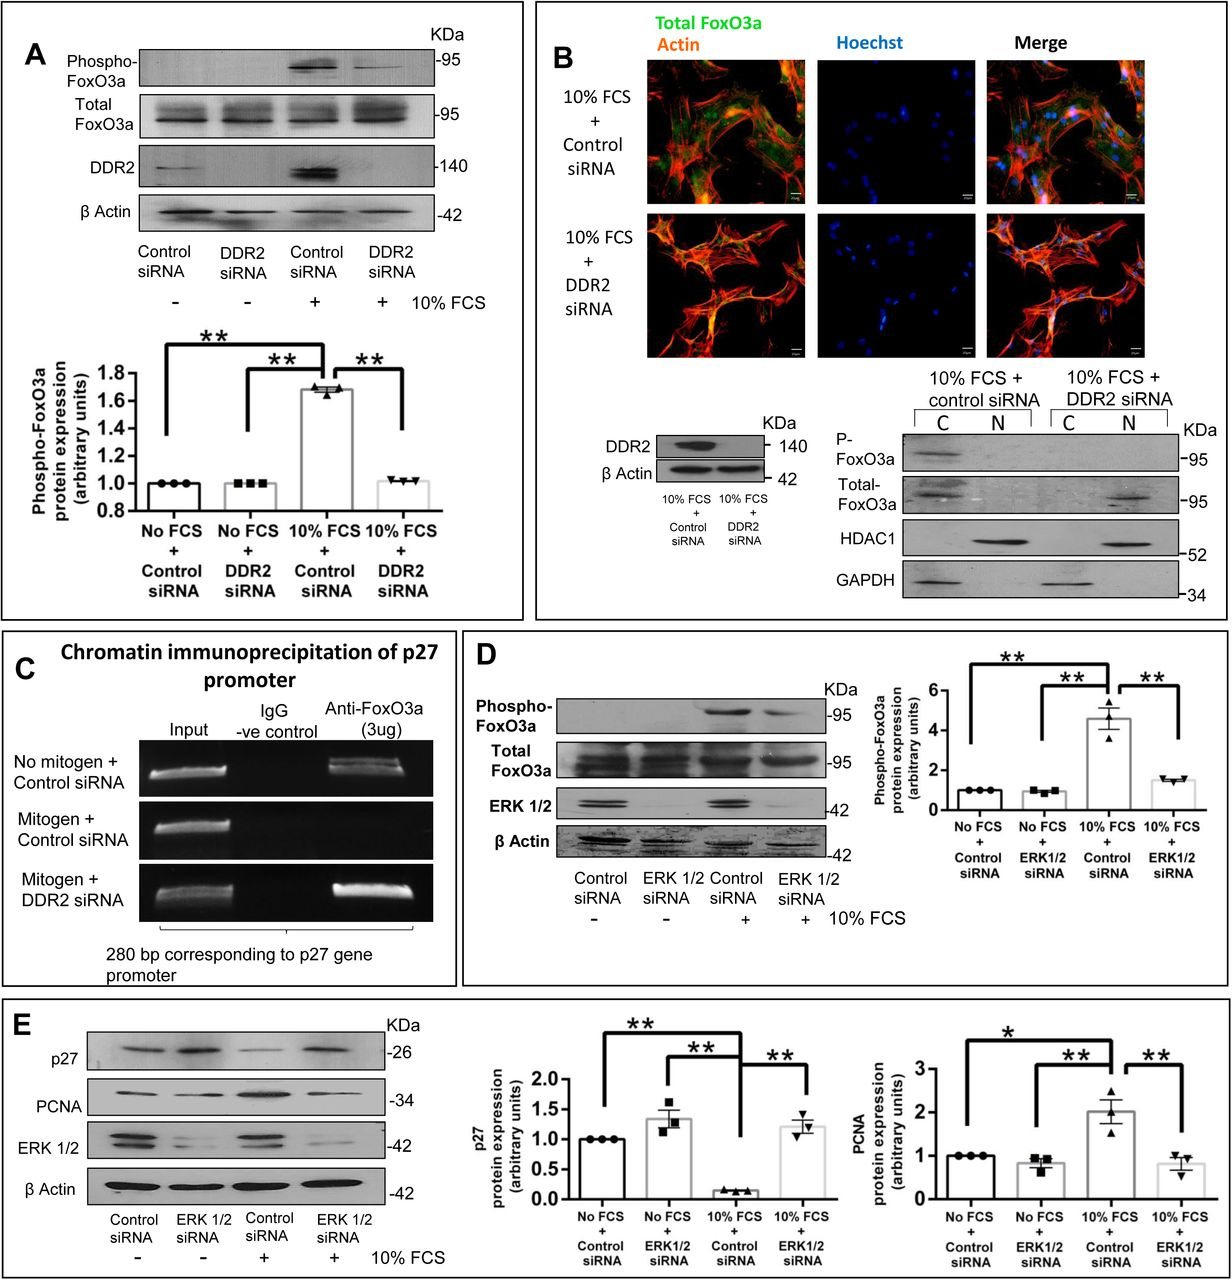 Regulation of p27 by DDR2: ii) Transcriptional regulation through modulating FoxO3a activity. ( A-E ) Sub-confluent cultures of cardiac fibroblasts were transfected with DDR2 siRNA ( A, B and C ) or ERK1/2 siRNA ( D and E ) (with control siRNA) and, following revival for 12h in 10% serum-supplemented medium, the cells were serumdeprived for synchronization. Post-synchronization, the cells were exposed to 10% Fetal Calf Serum. ( A ) DDR2 siRNA-transfected cells were collected at 8h and analysed by western blotting for expression levels of Phospho-FoxO3a (T32)/Total FoxO3a, with β-actin as loading control. Significance was determined by two-way ANOVA (Tukey's multiple comparisons test, **p